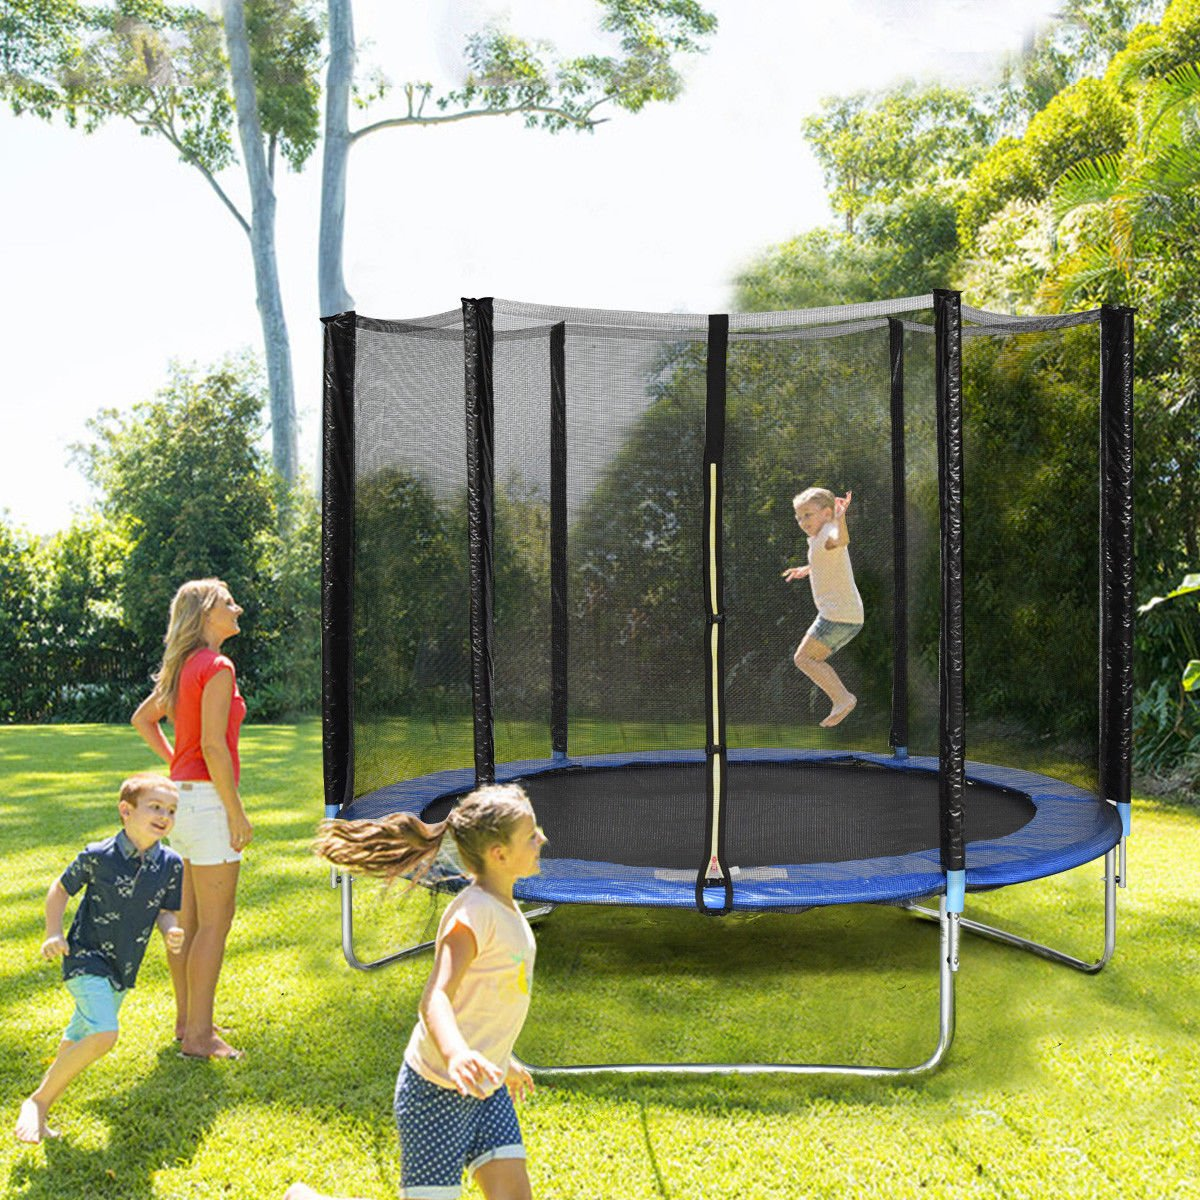 Giantex Trampoline Combo Bounce Jump Safety Enclosure Net W/Spring Pad Ladder (8 FT) by Giantex (Image #2)